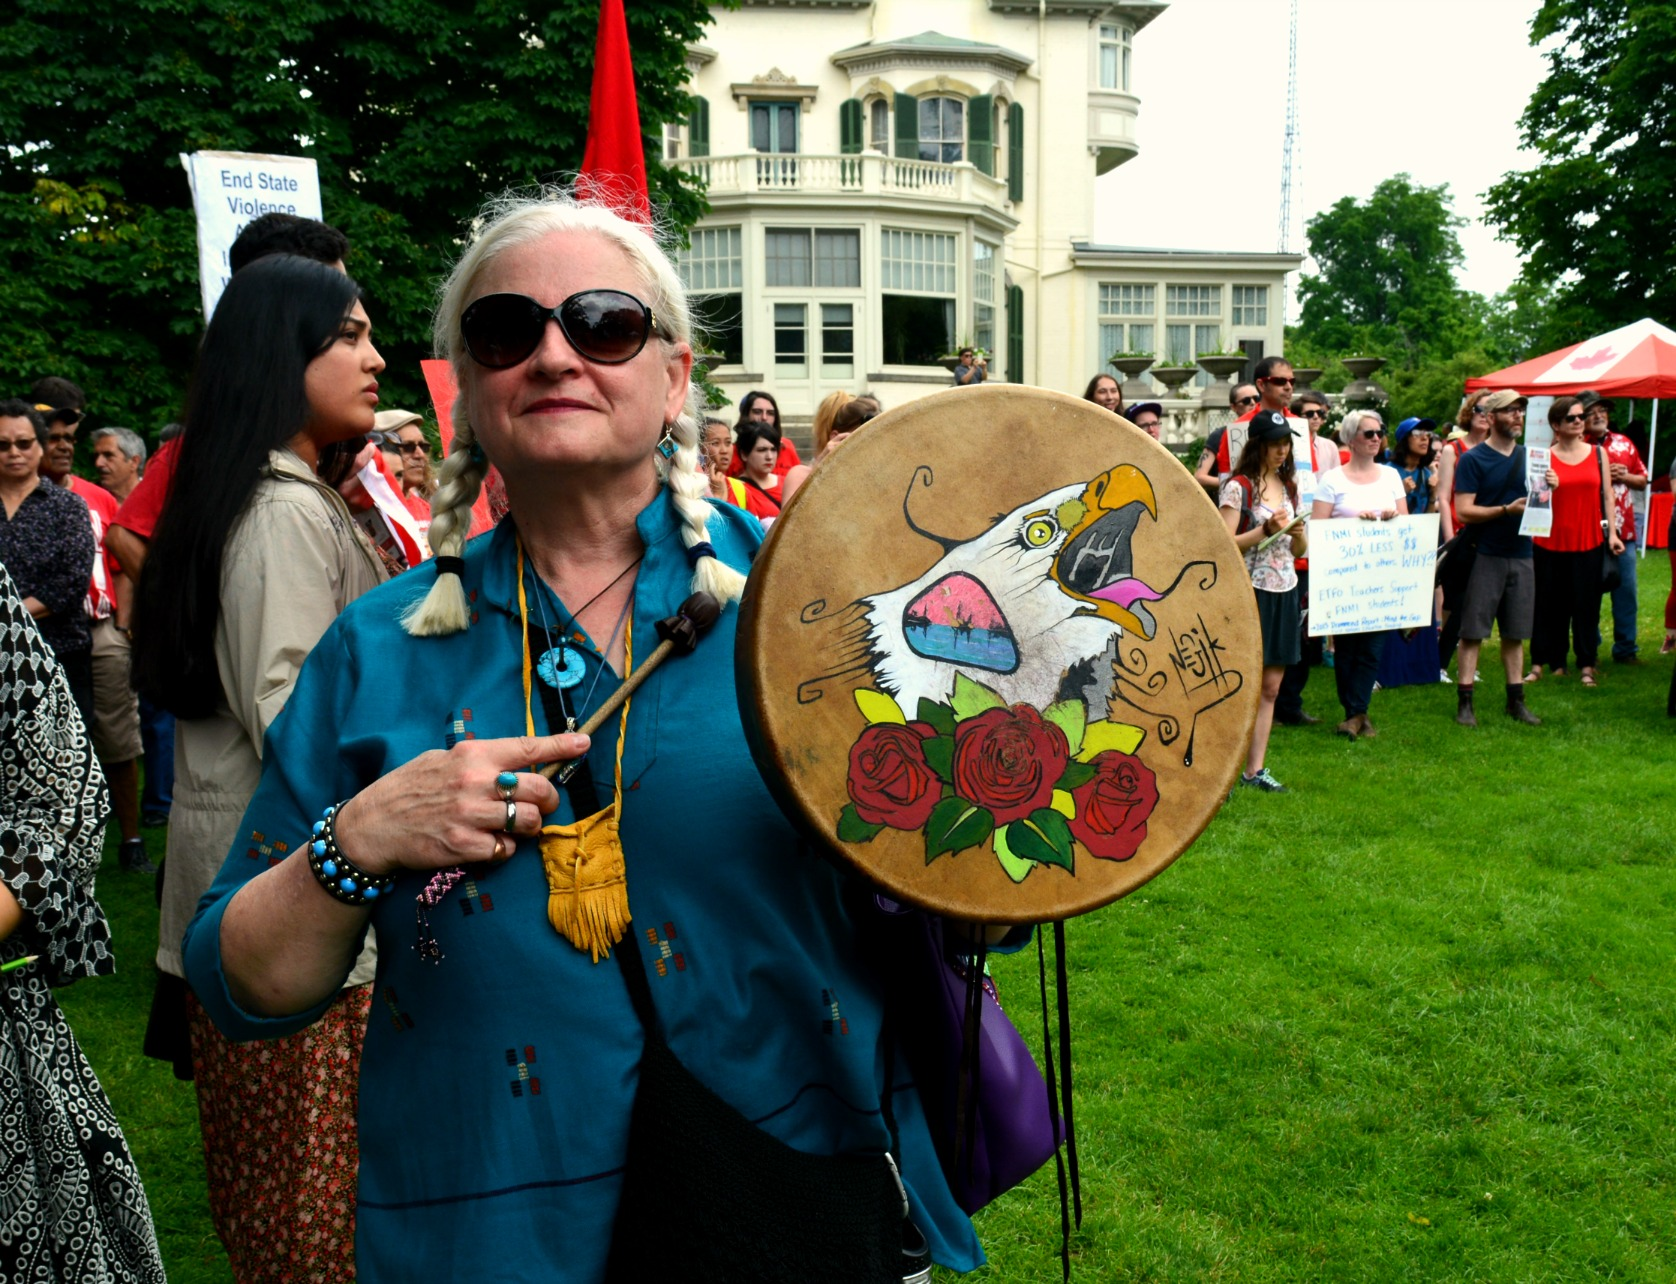 Protester with a beautiful hand painted drum